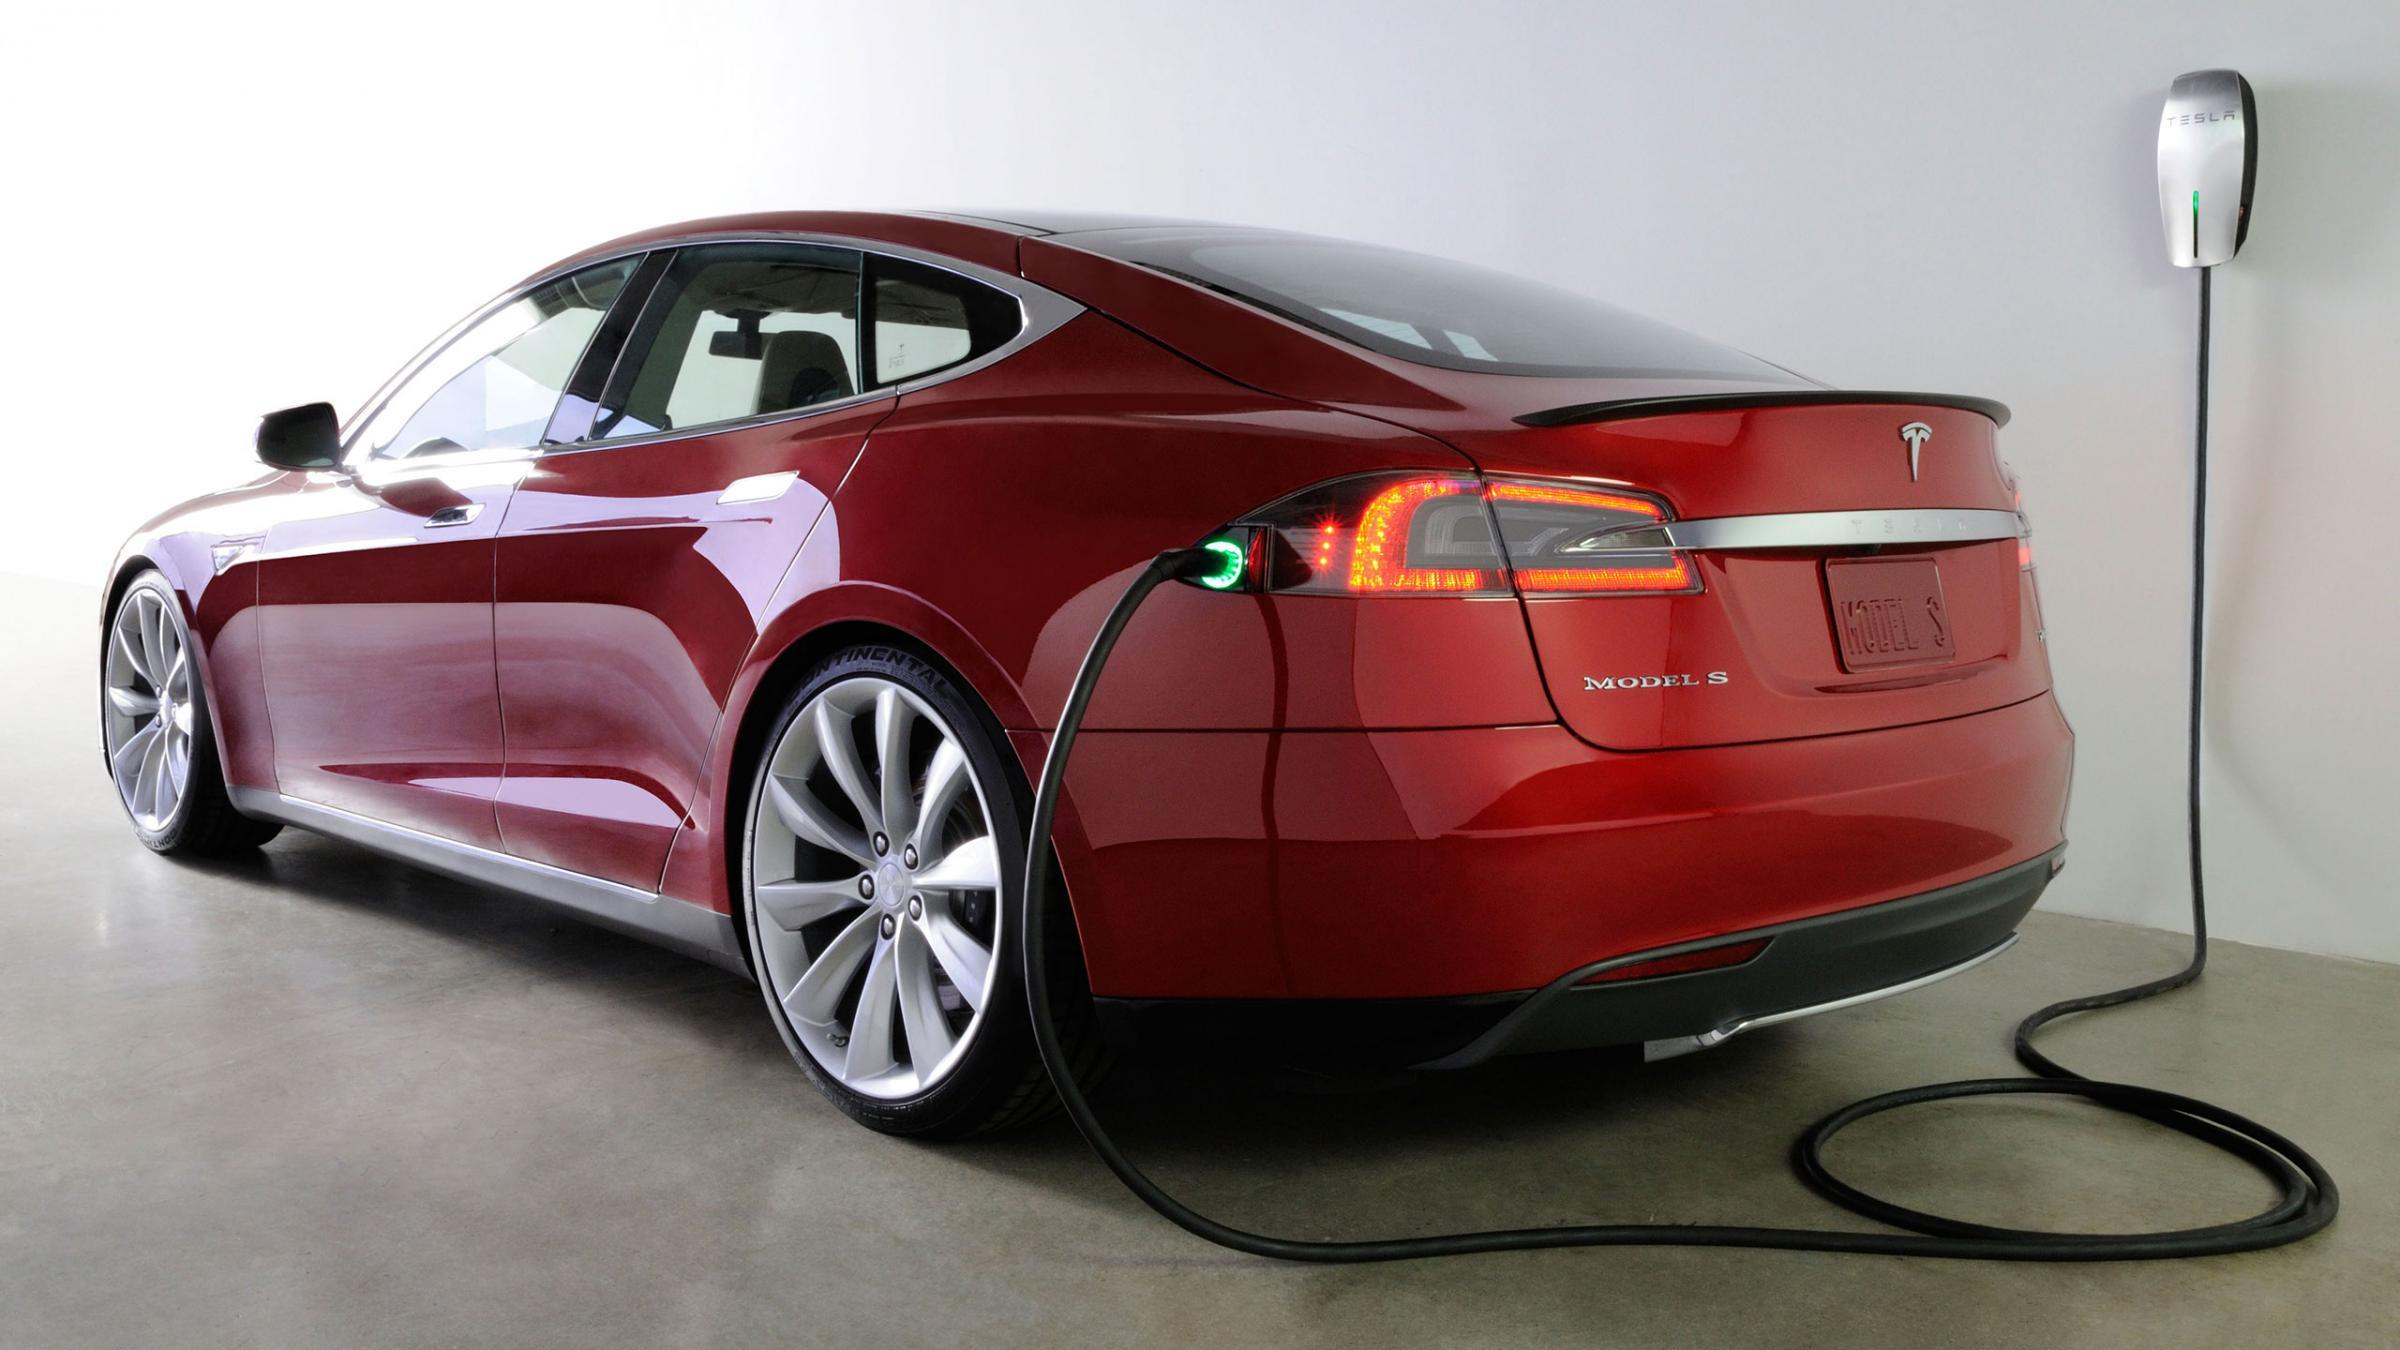 Tesla High Power Charging Stations now available at Marcus Hotels & Resorts' properties throughout the U.S. (Photo: Business Wire)